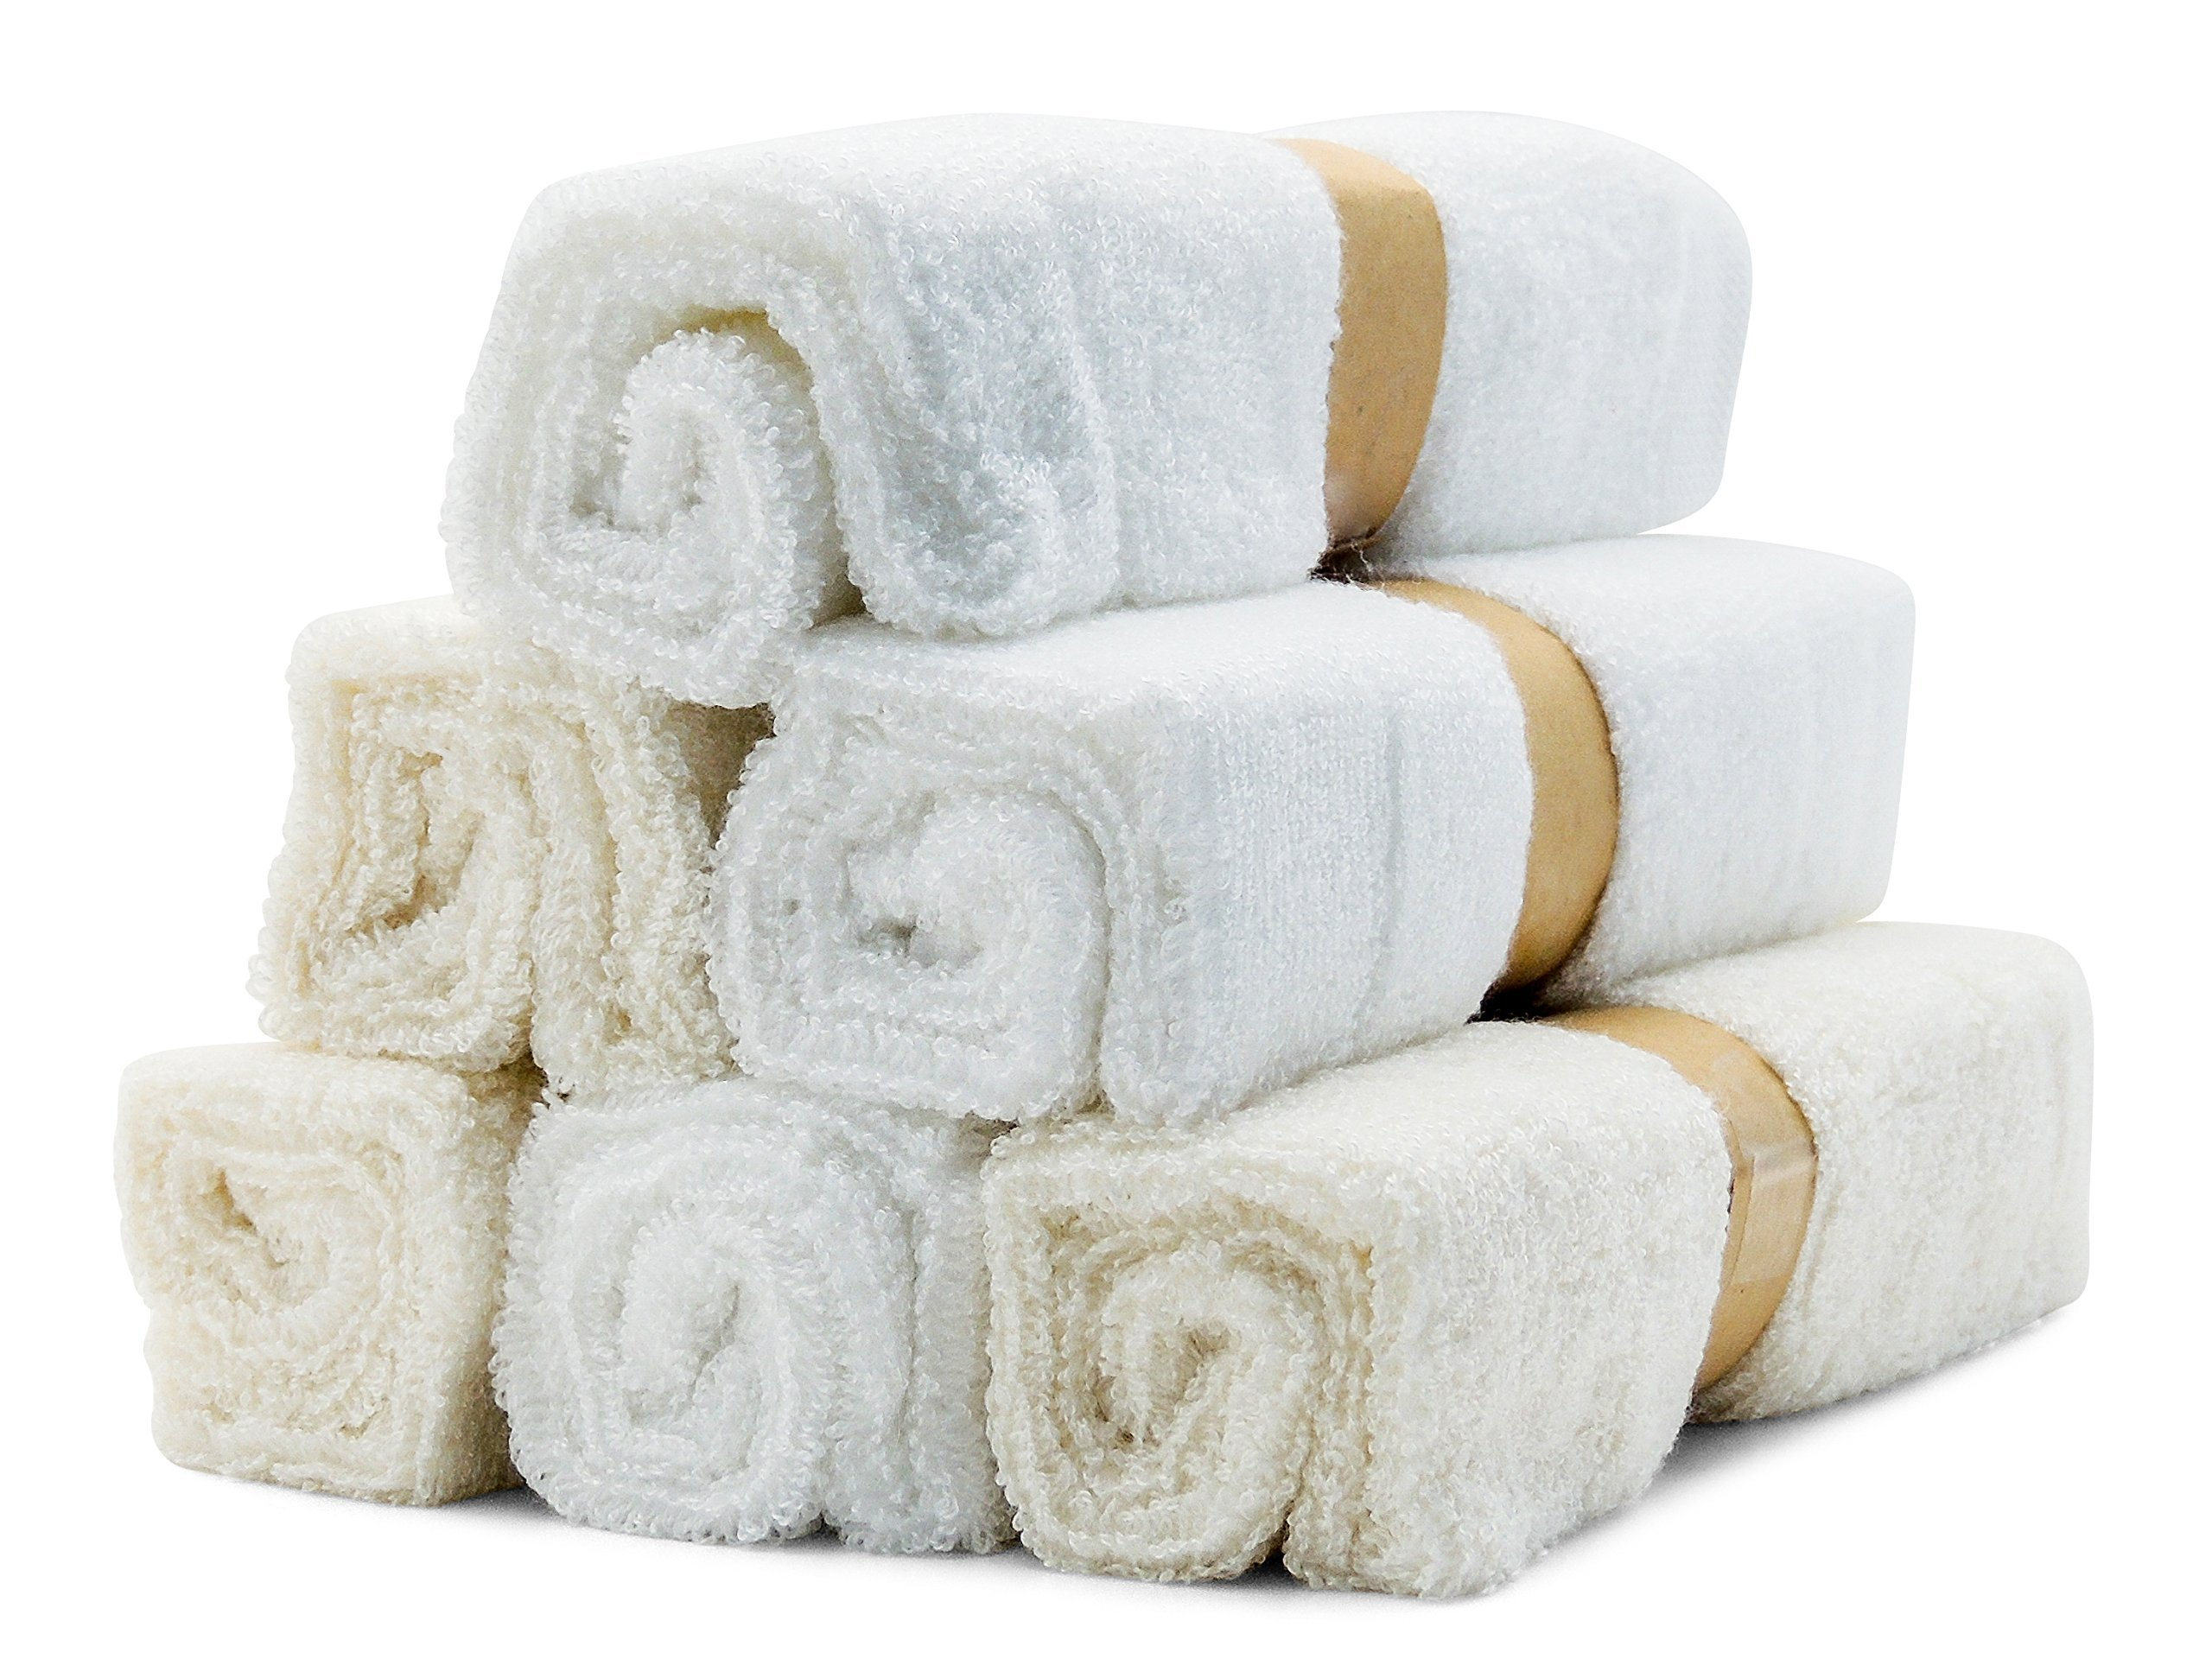 Bamboo Baby Soft Organic Washcloth Towels for Babies by Bamboo Baby